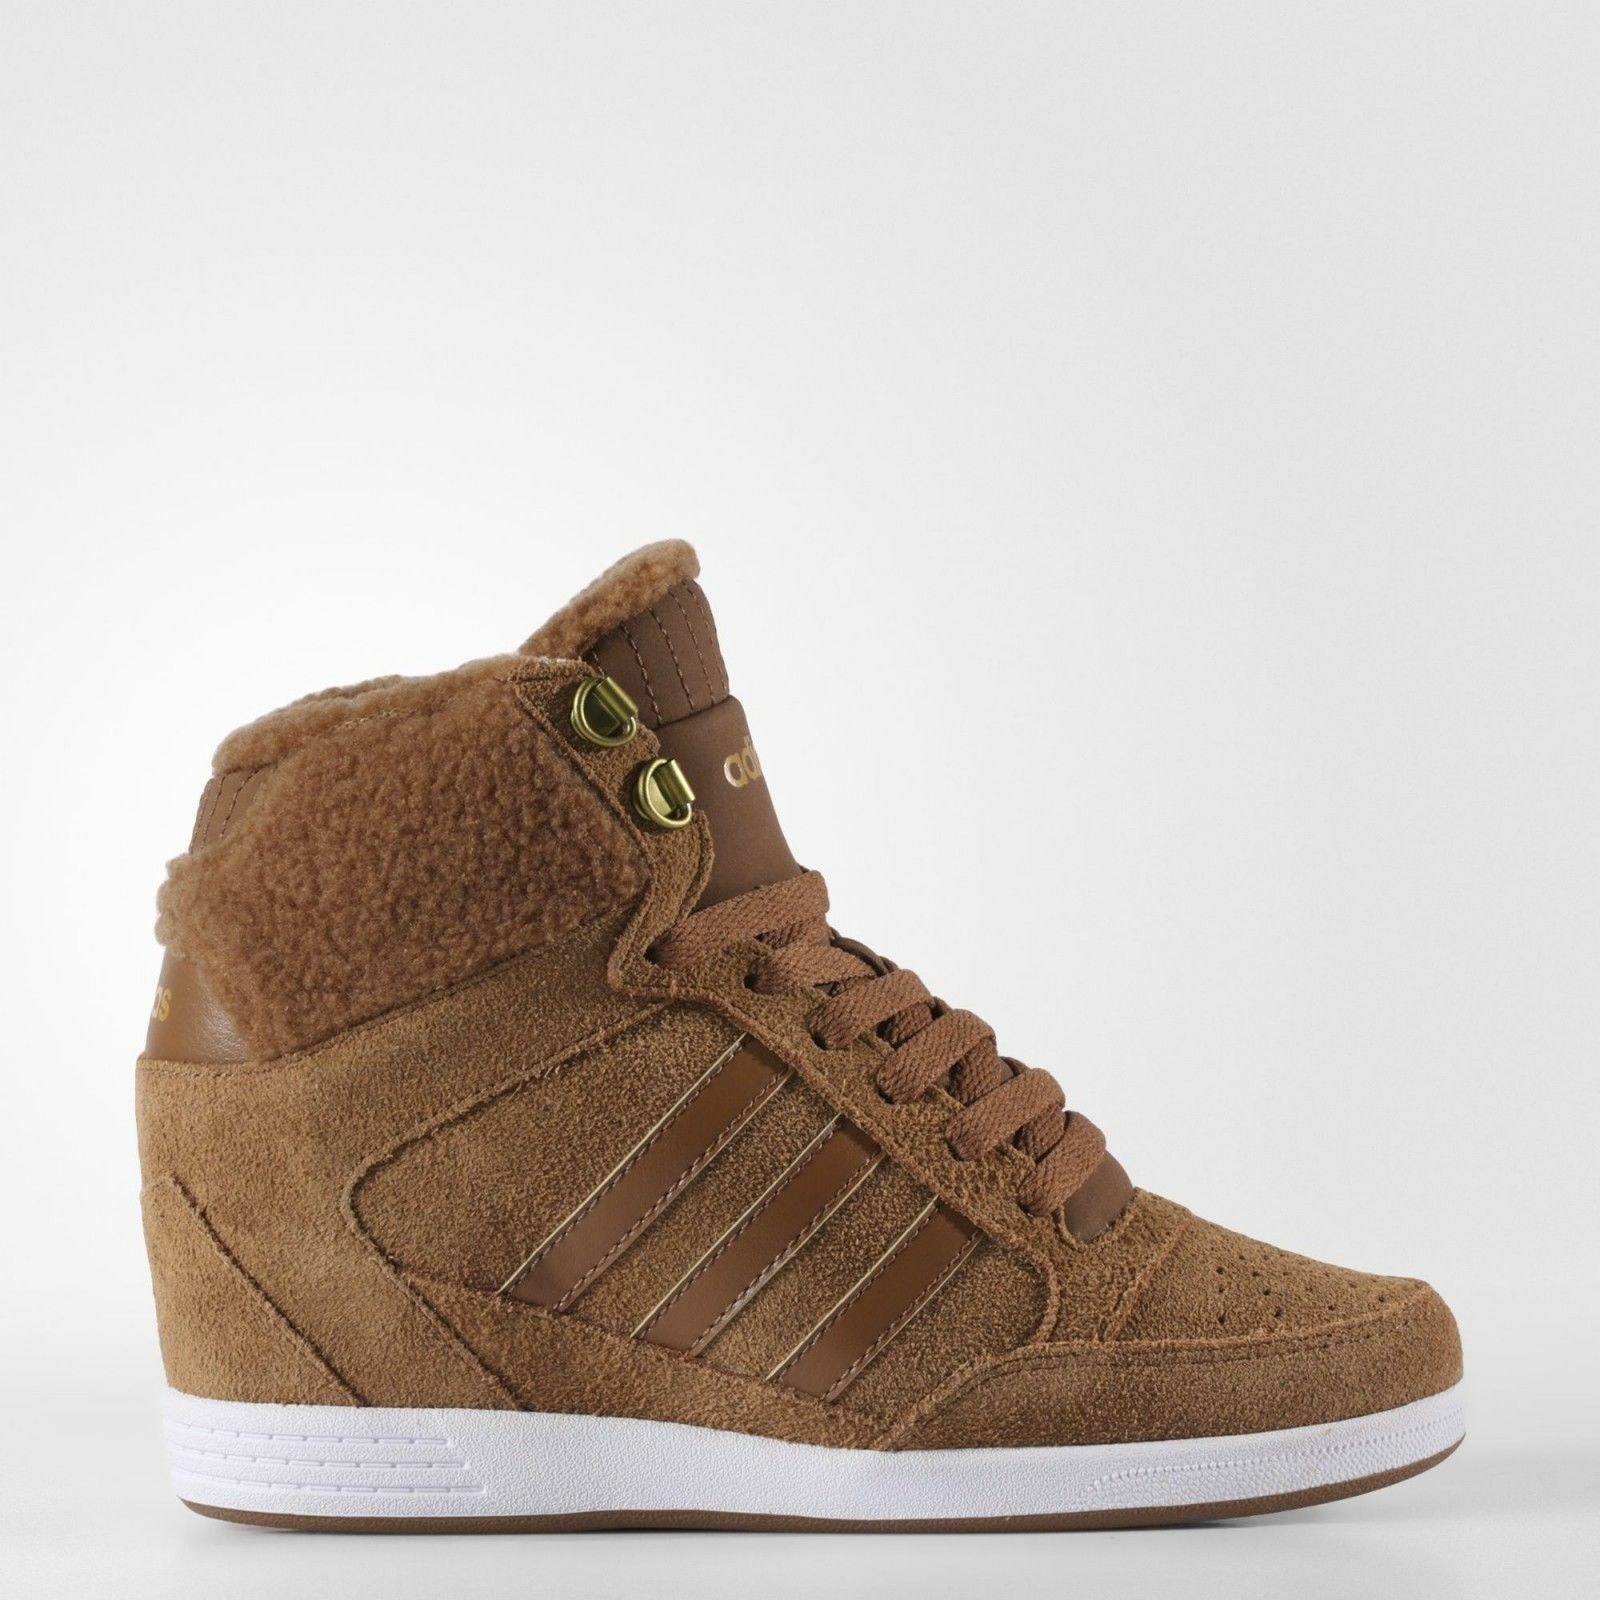 ADIDAS SUPER TOP Marron COMFORT SUEDE WEDGE WINTER Chaussures bottes WALKING AW4276 PRM